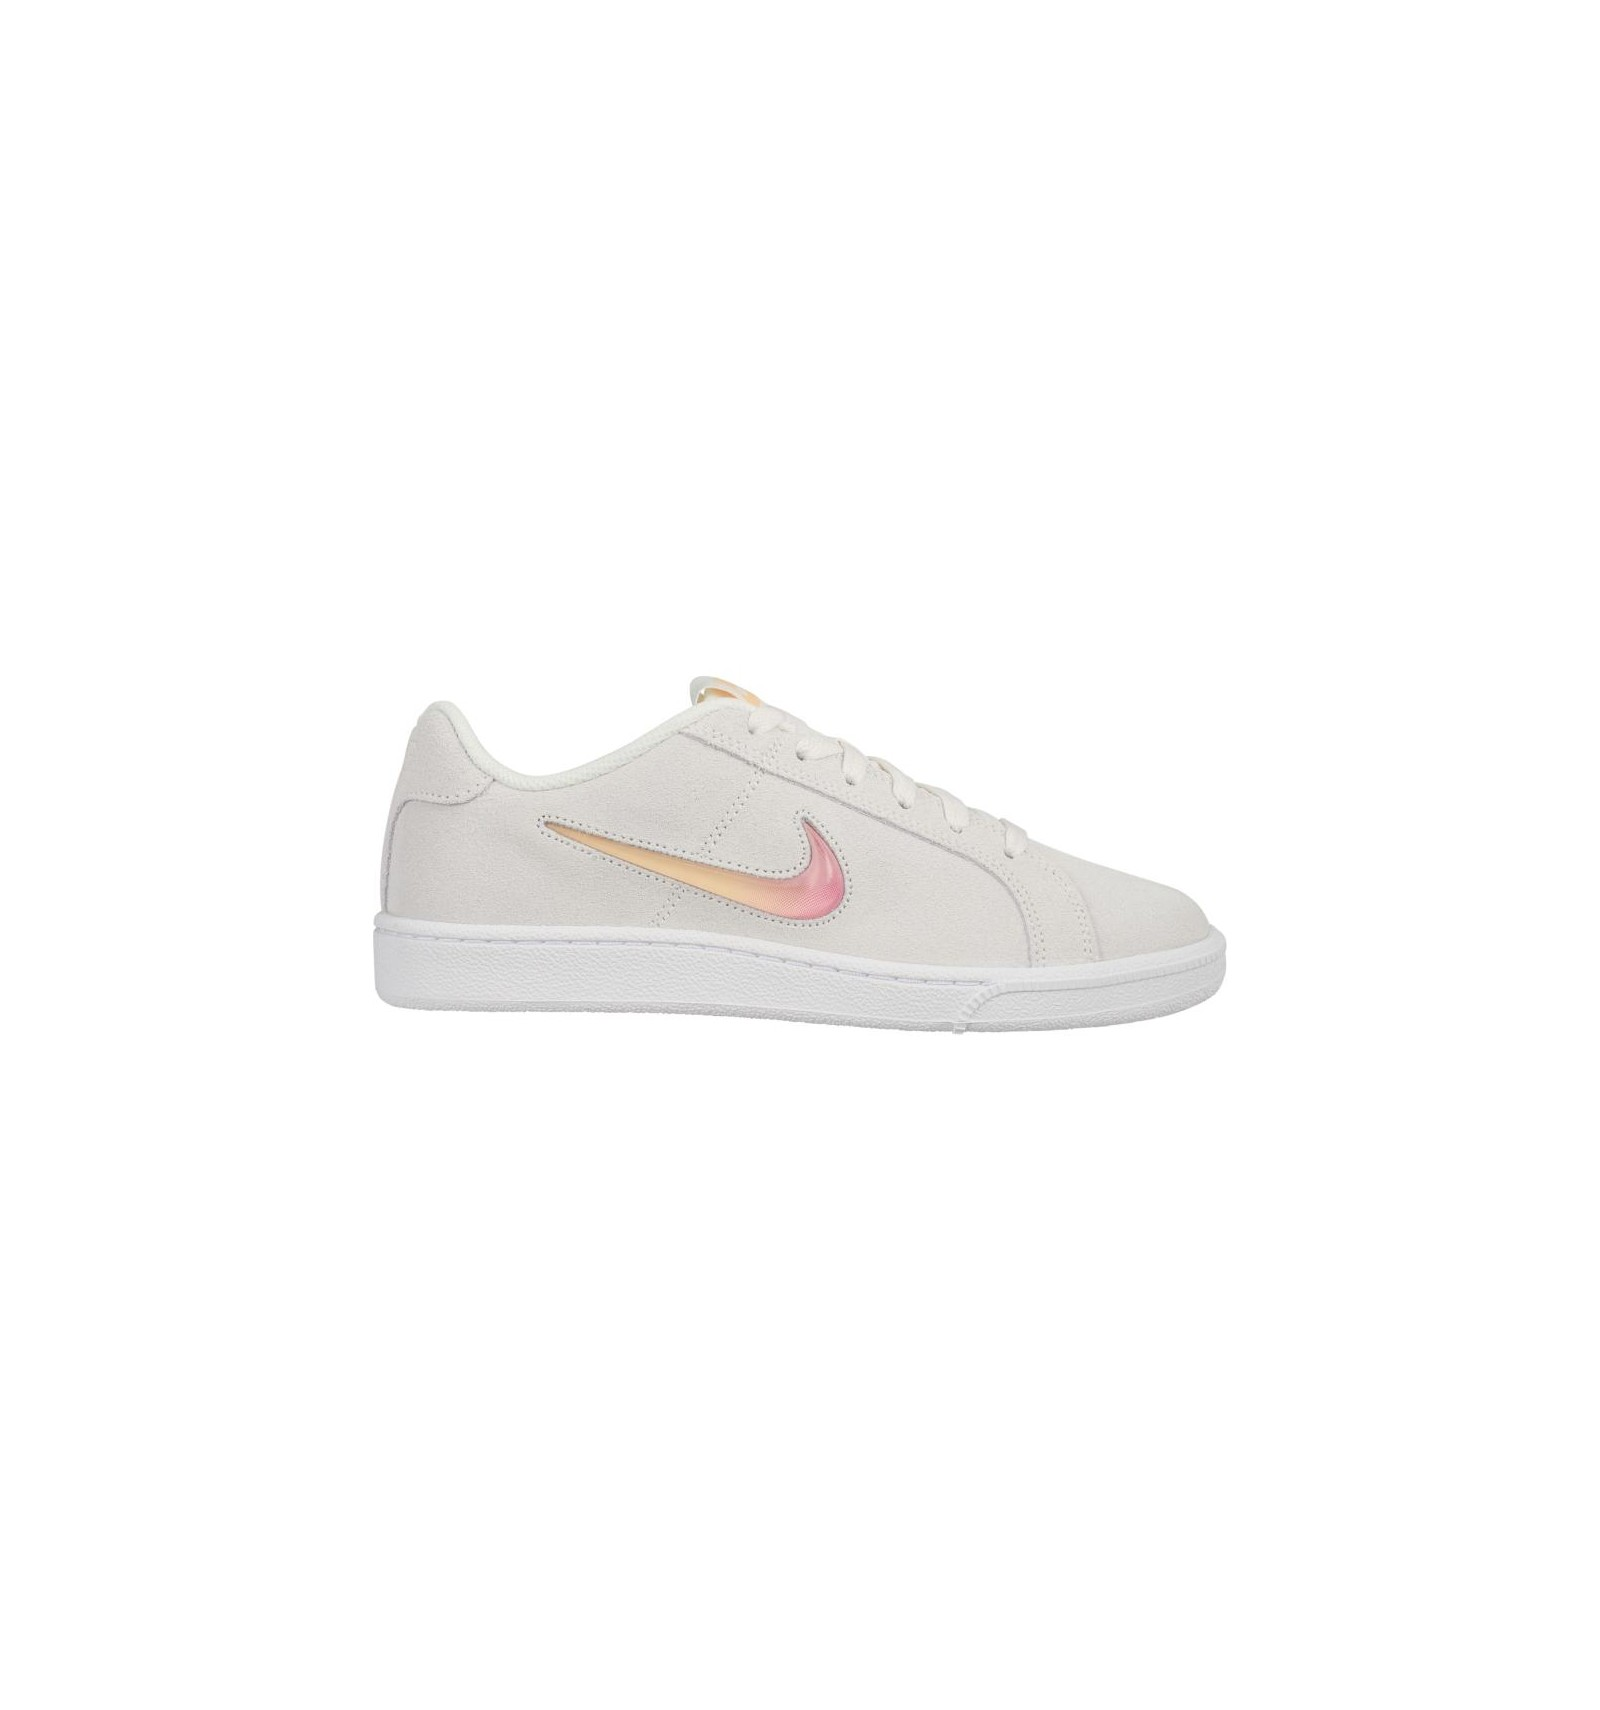 Entender Lada manual  Tenis para mujer marca Nike color blanco - UNICO.COM.CO